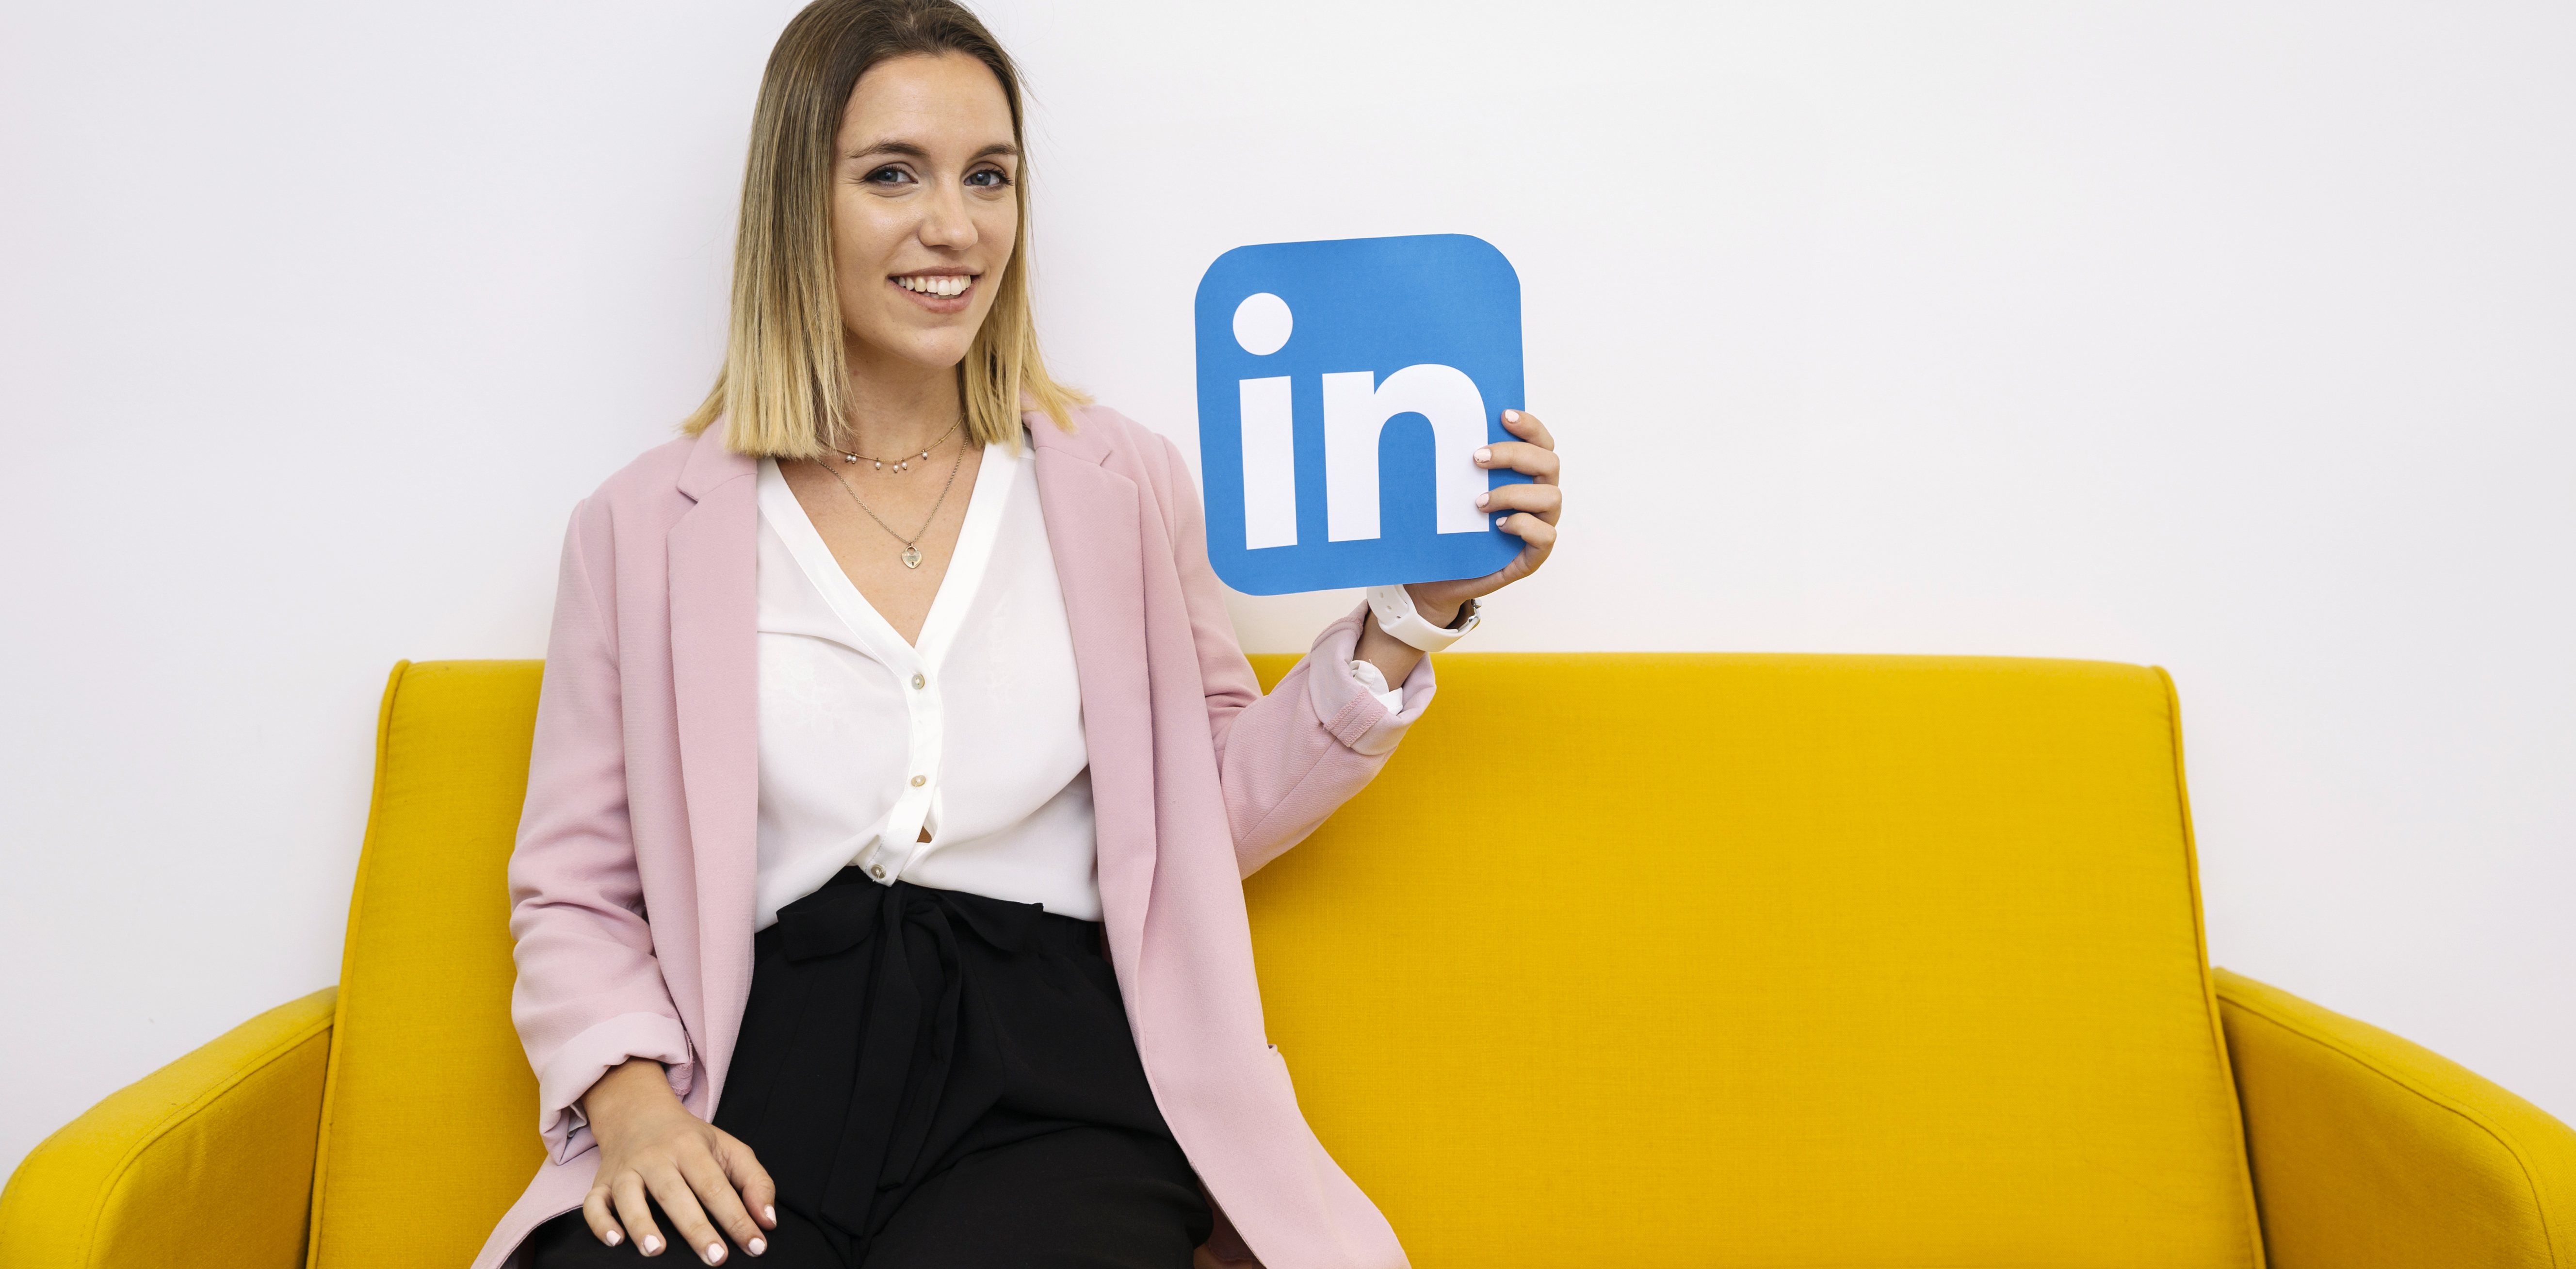 Attract Employers With Your Skills On Linkedin